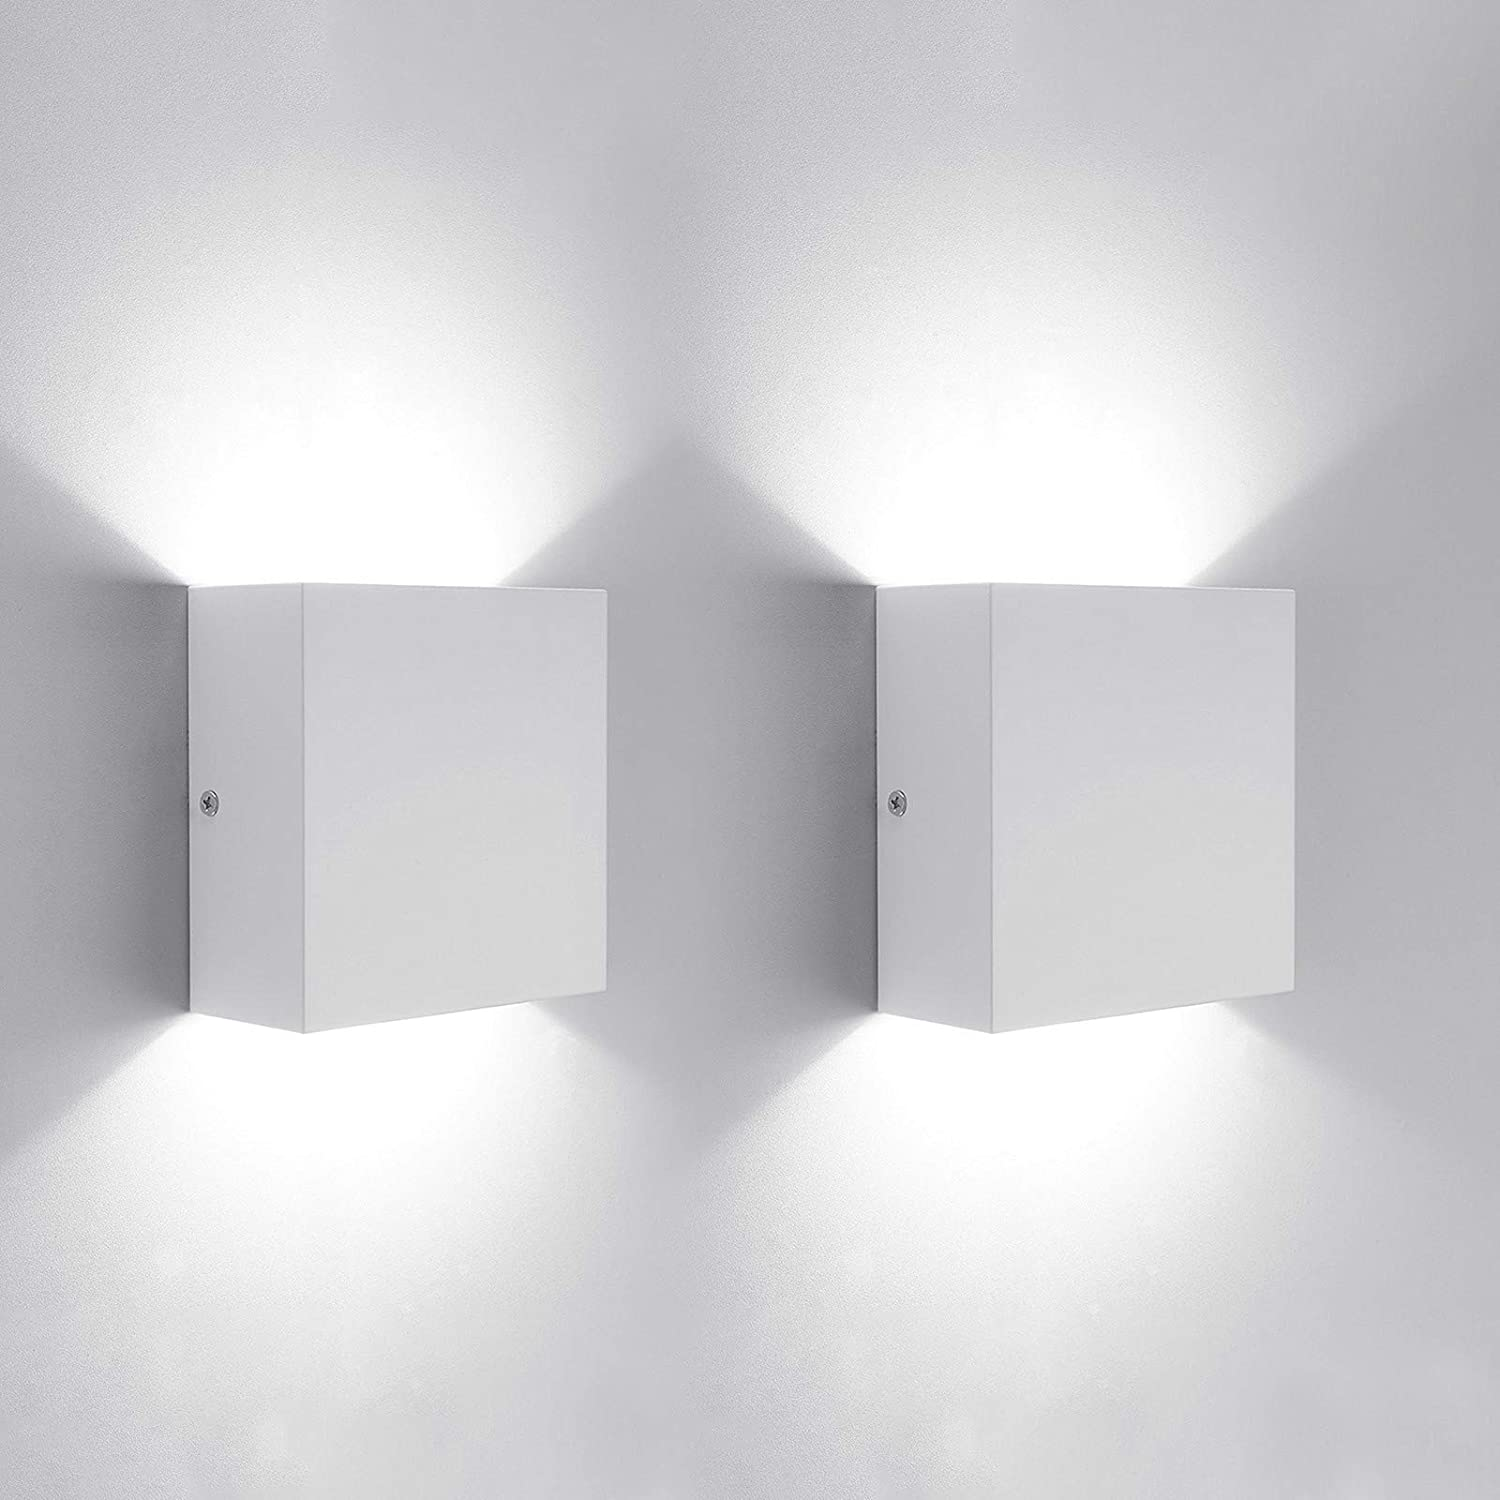 2 Pack Modern Wall Sconce 10W, Lightess White Up Down Wall Mount Lights Metal Mini LED Wall Lamp for Living Room Bedroom Hallway Decor, Cool White, O1182TP